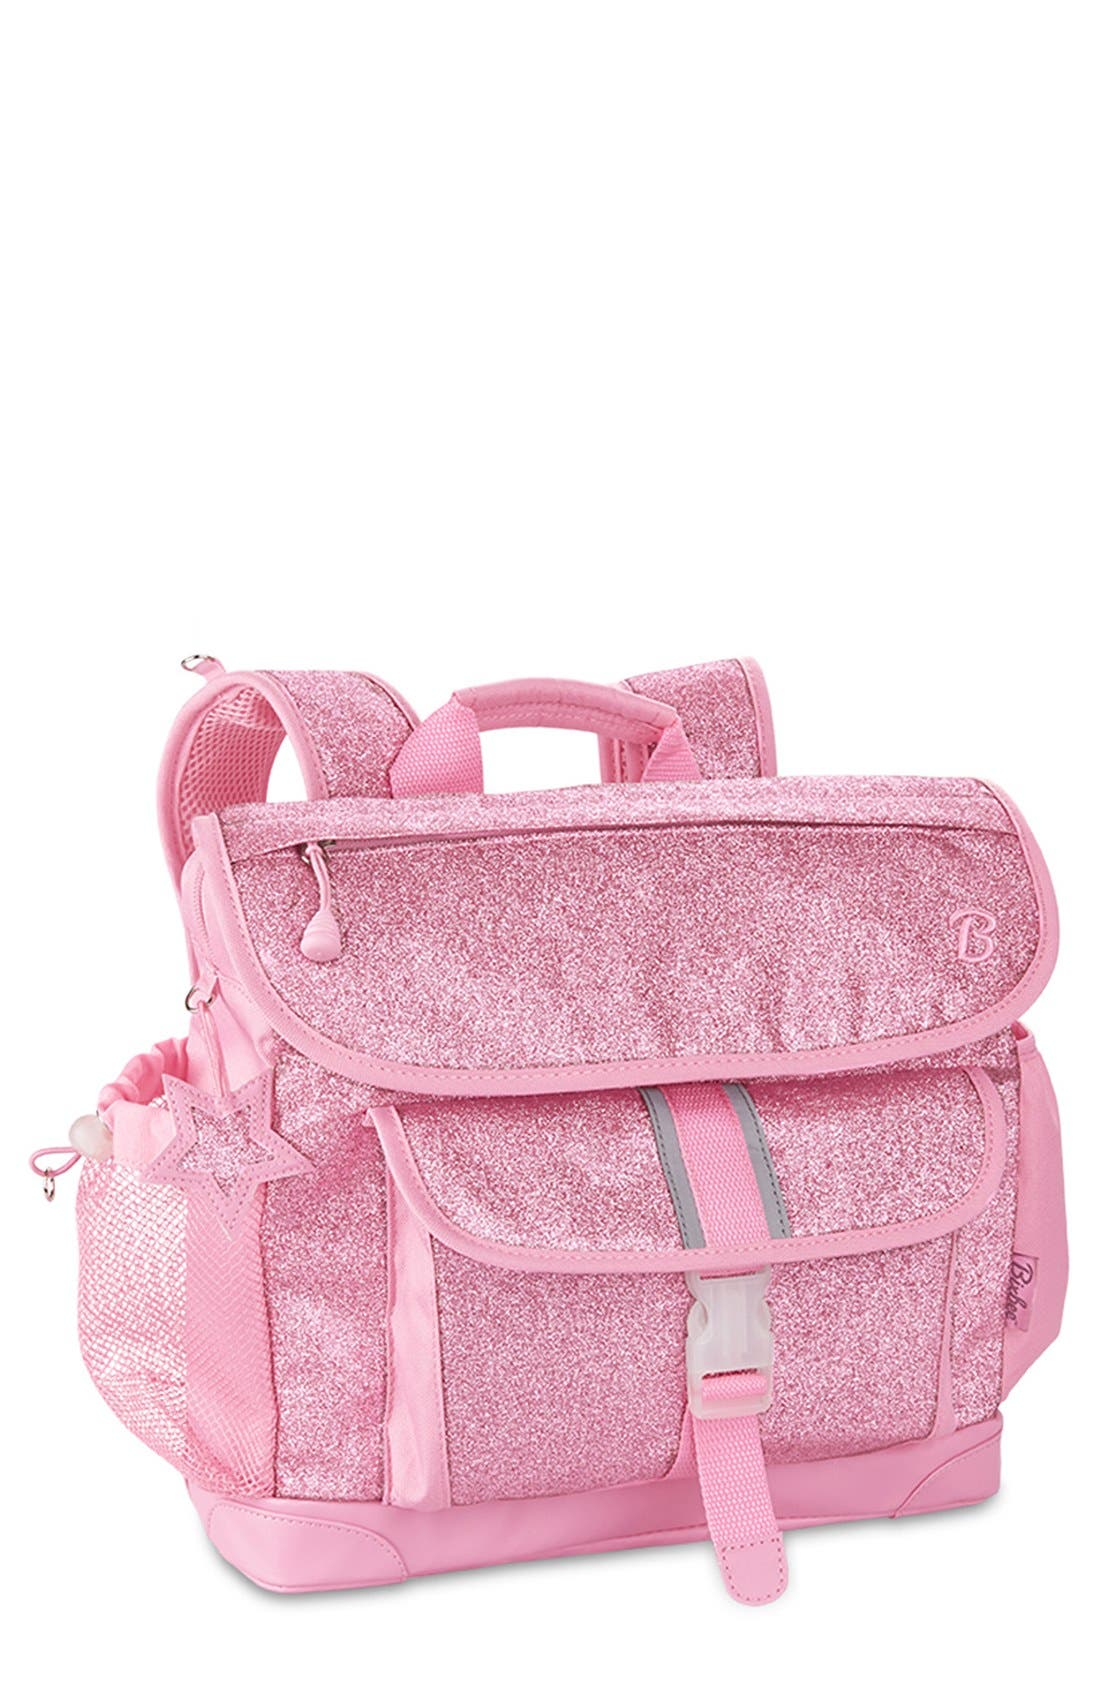 'Large Sparkalicious' Backpack,                             Main thumbnail 1, color,